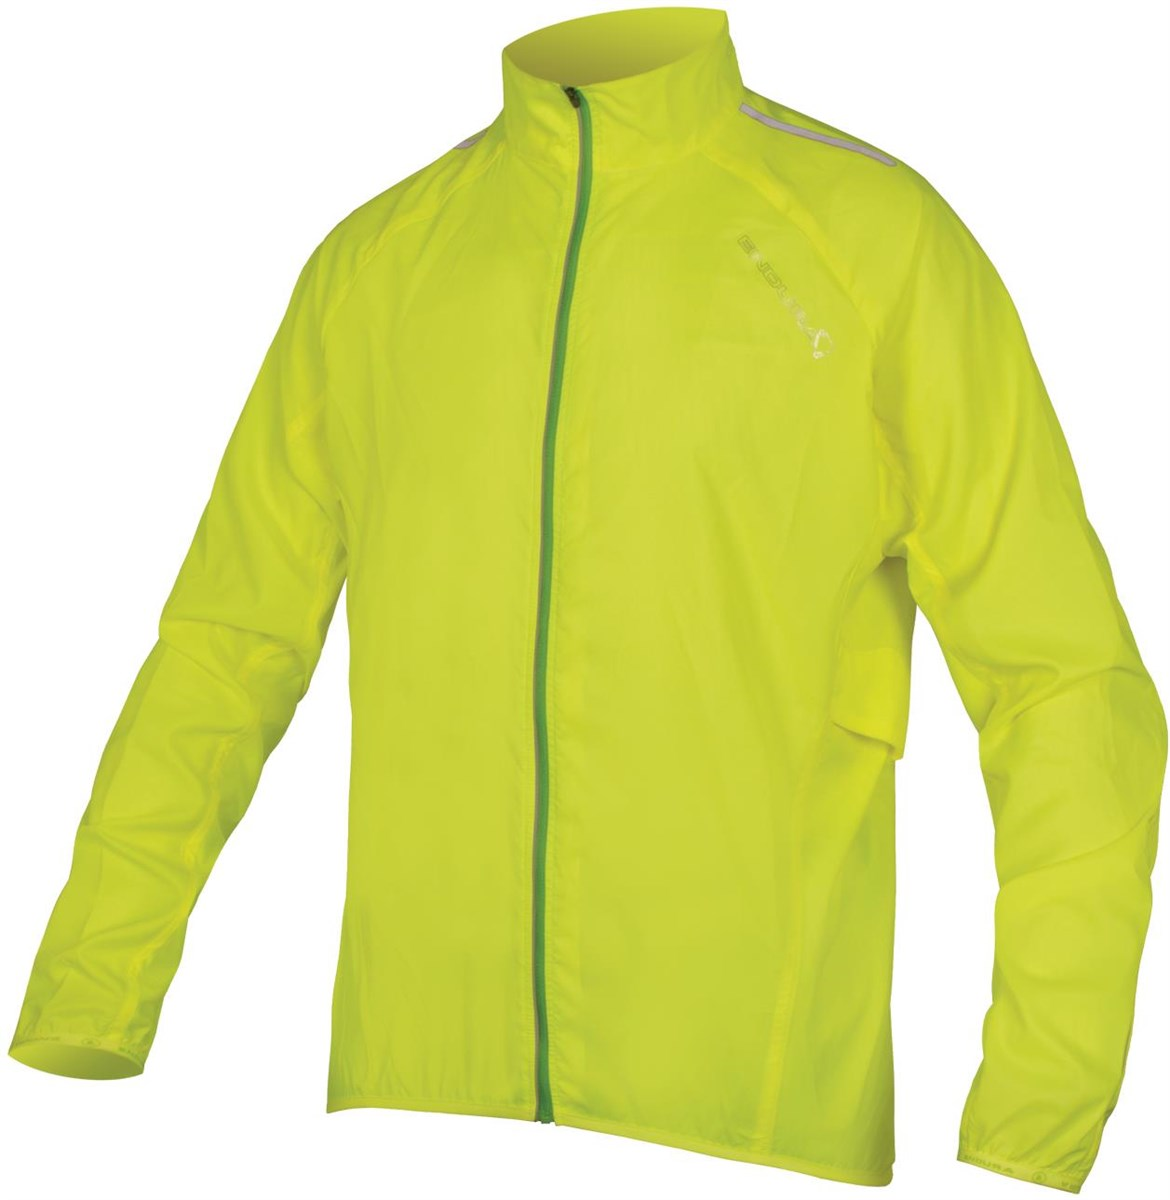 Endura Pakajak II Windproof Cycling Jacket AW17